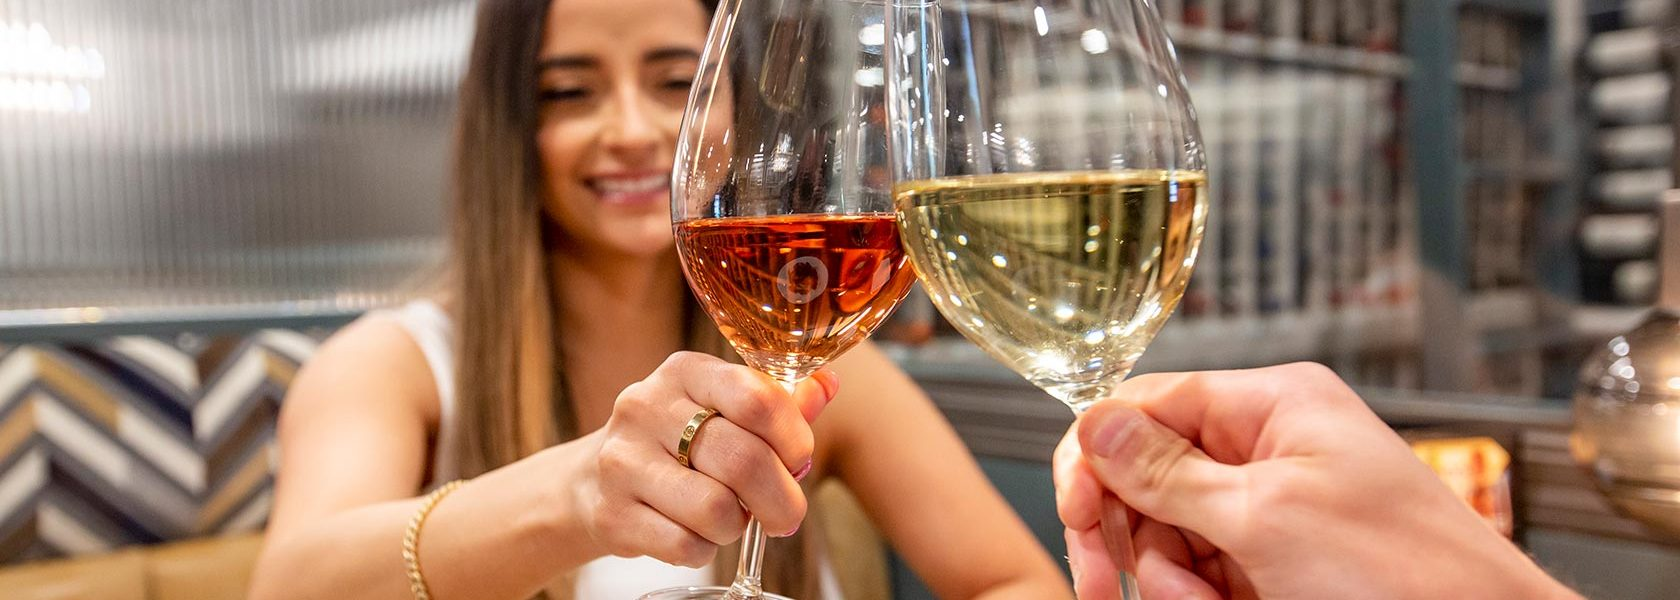 Woman clinking wine glasses in toast with dining companion.